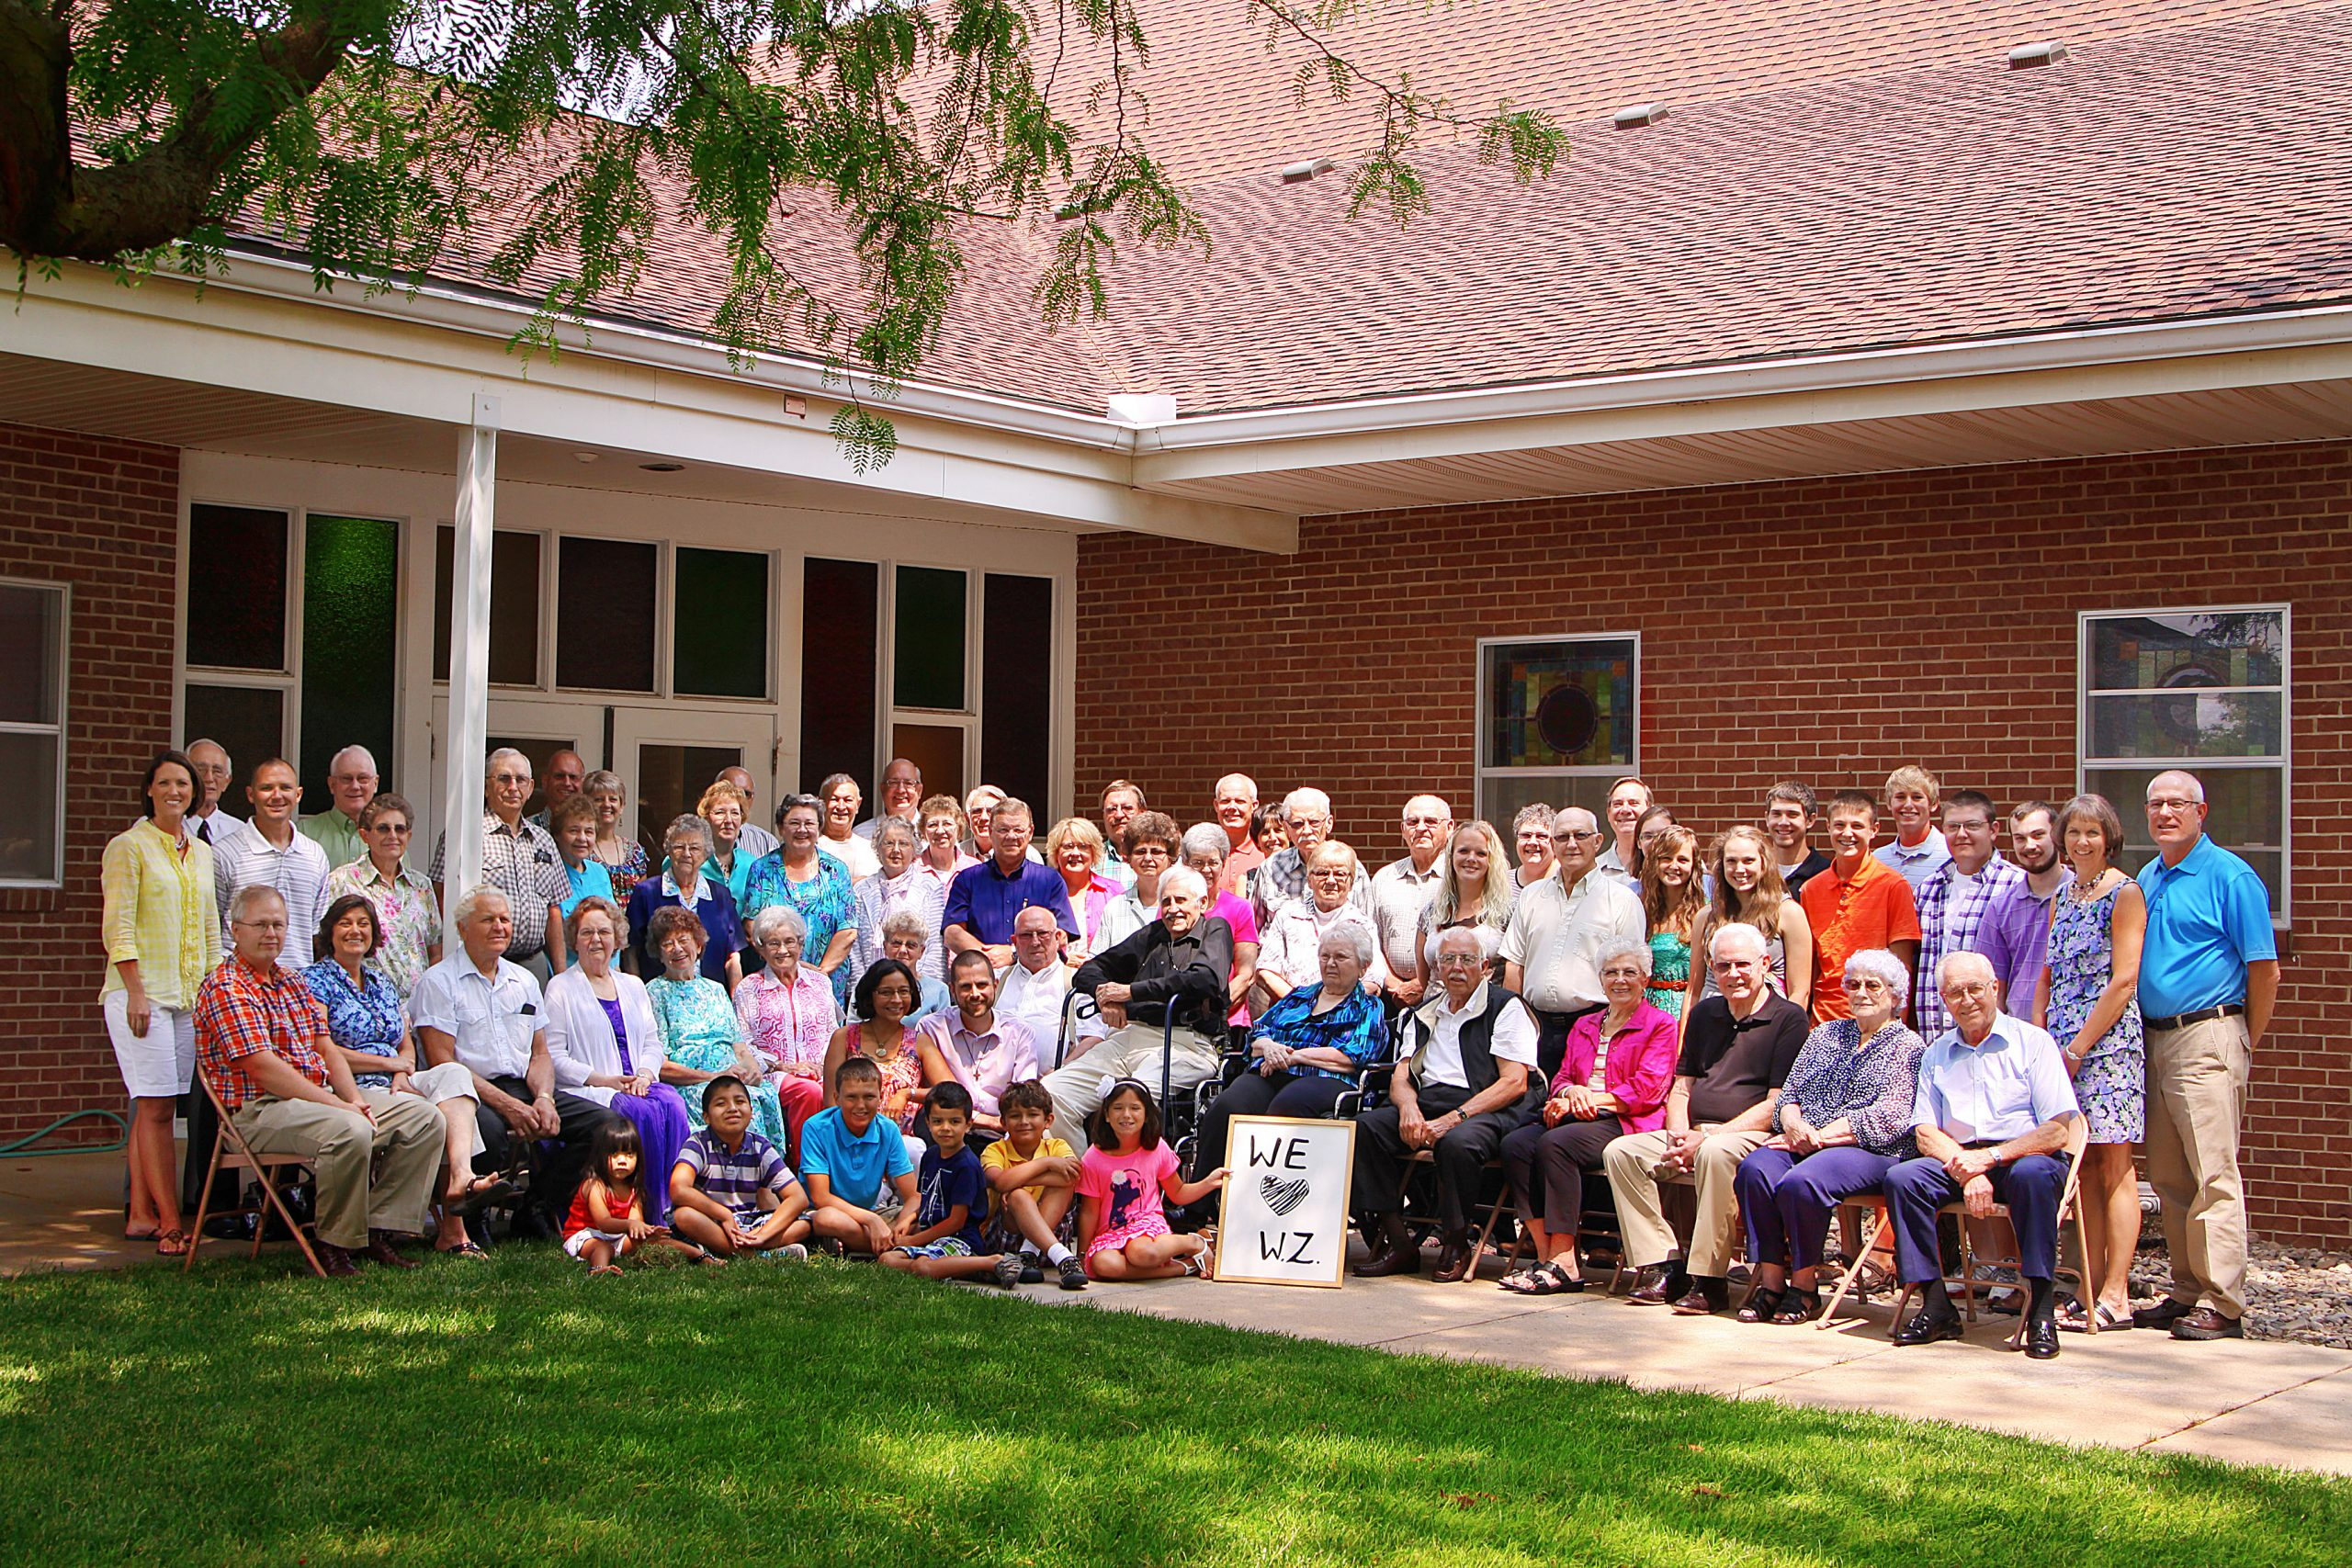 The congregation of West Zion Mennonite Church, Moundridge, Kan. (Photo provided)